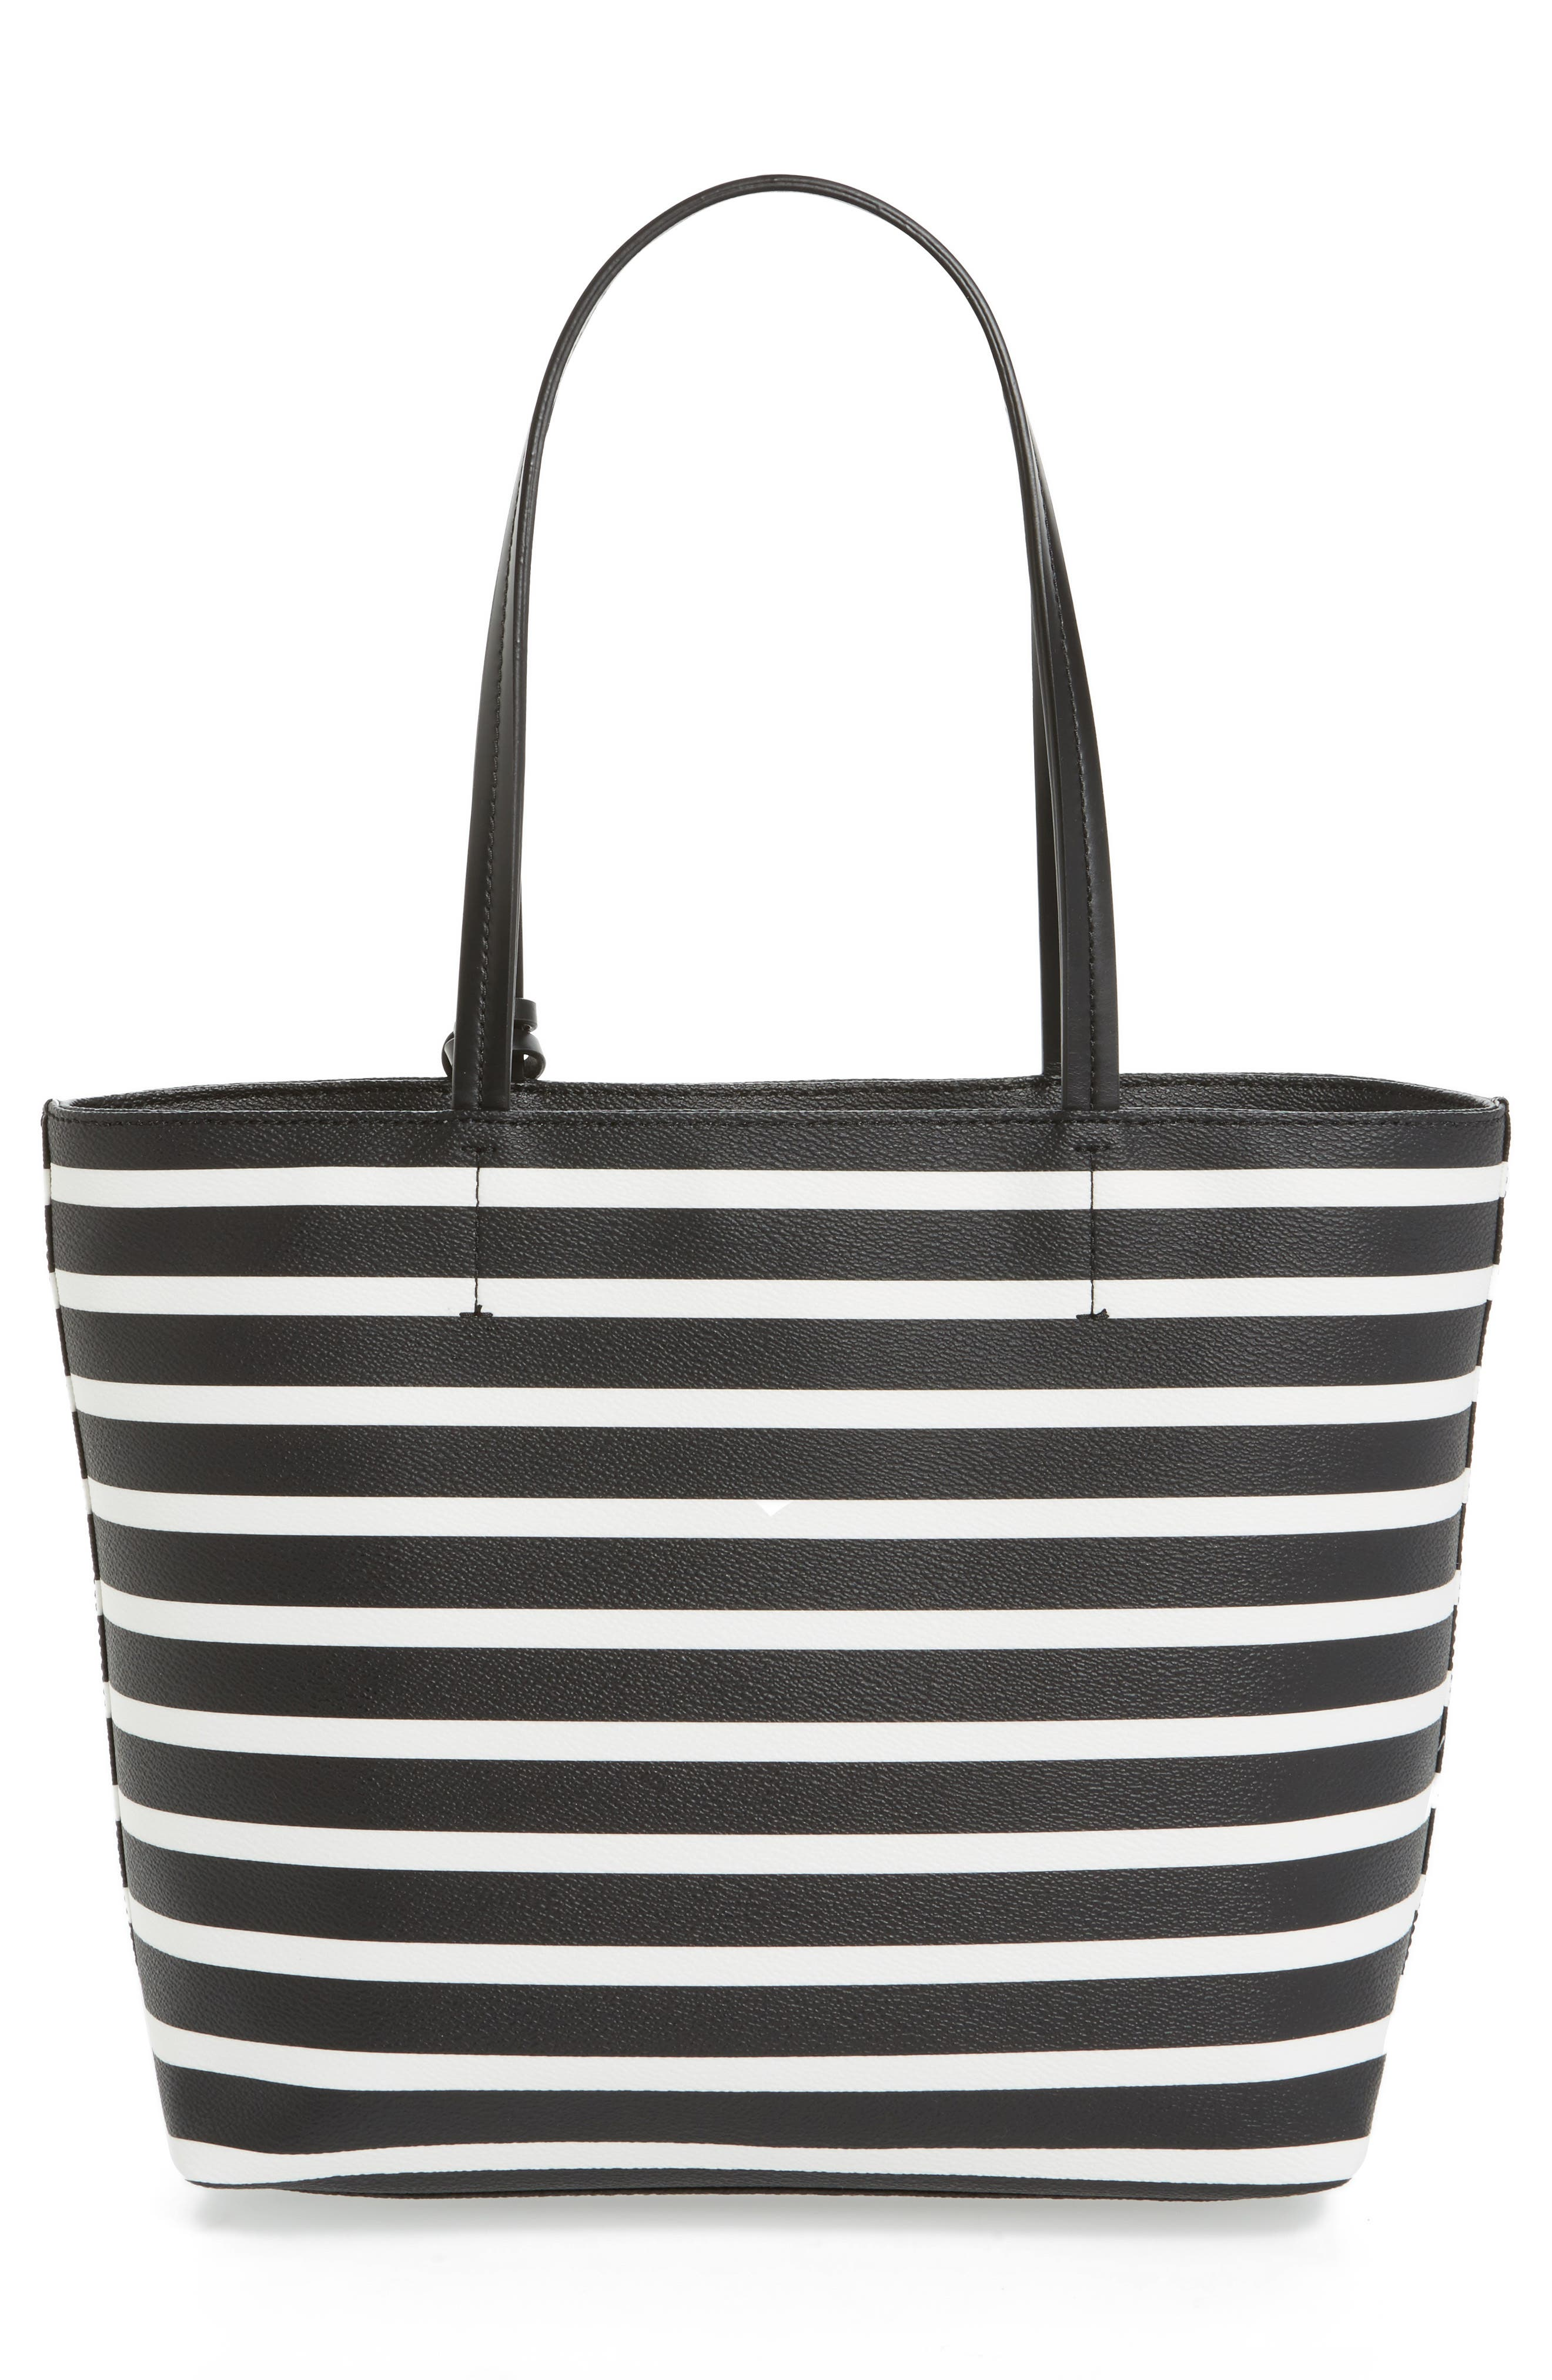 hyde lane - small riley faux leather tote,                             Alternate thumbnail 2, color,                             Black/ Off White